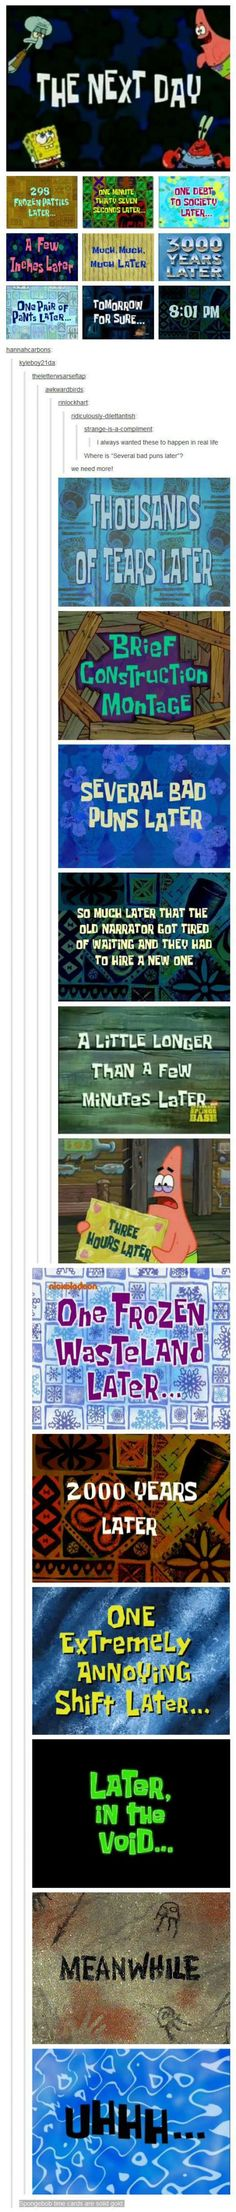 "Spongebob time cards are the best. But! The all important ""One Eternity Later"" card is missing! (Favorite Meme Guys)"